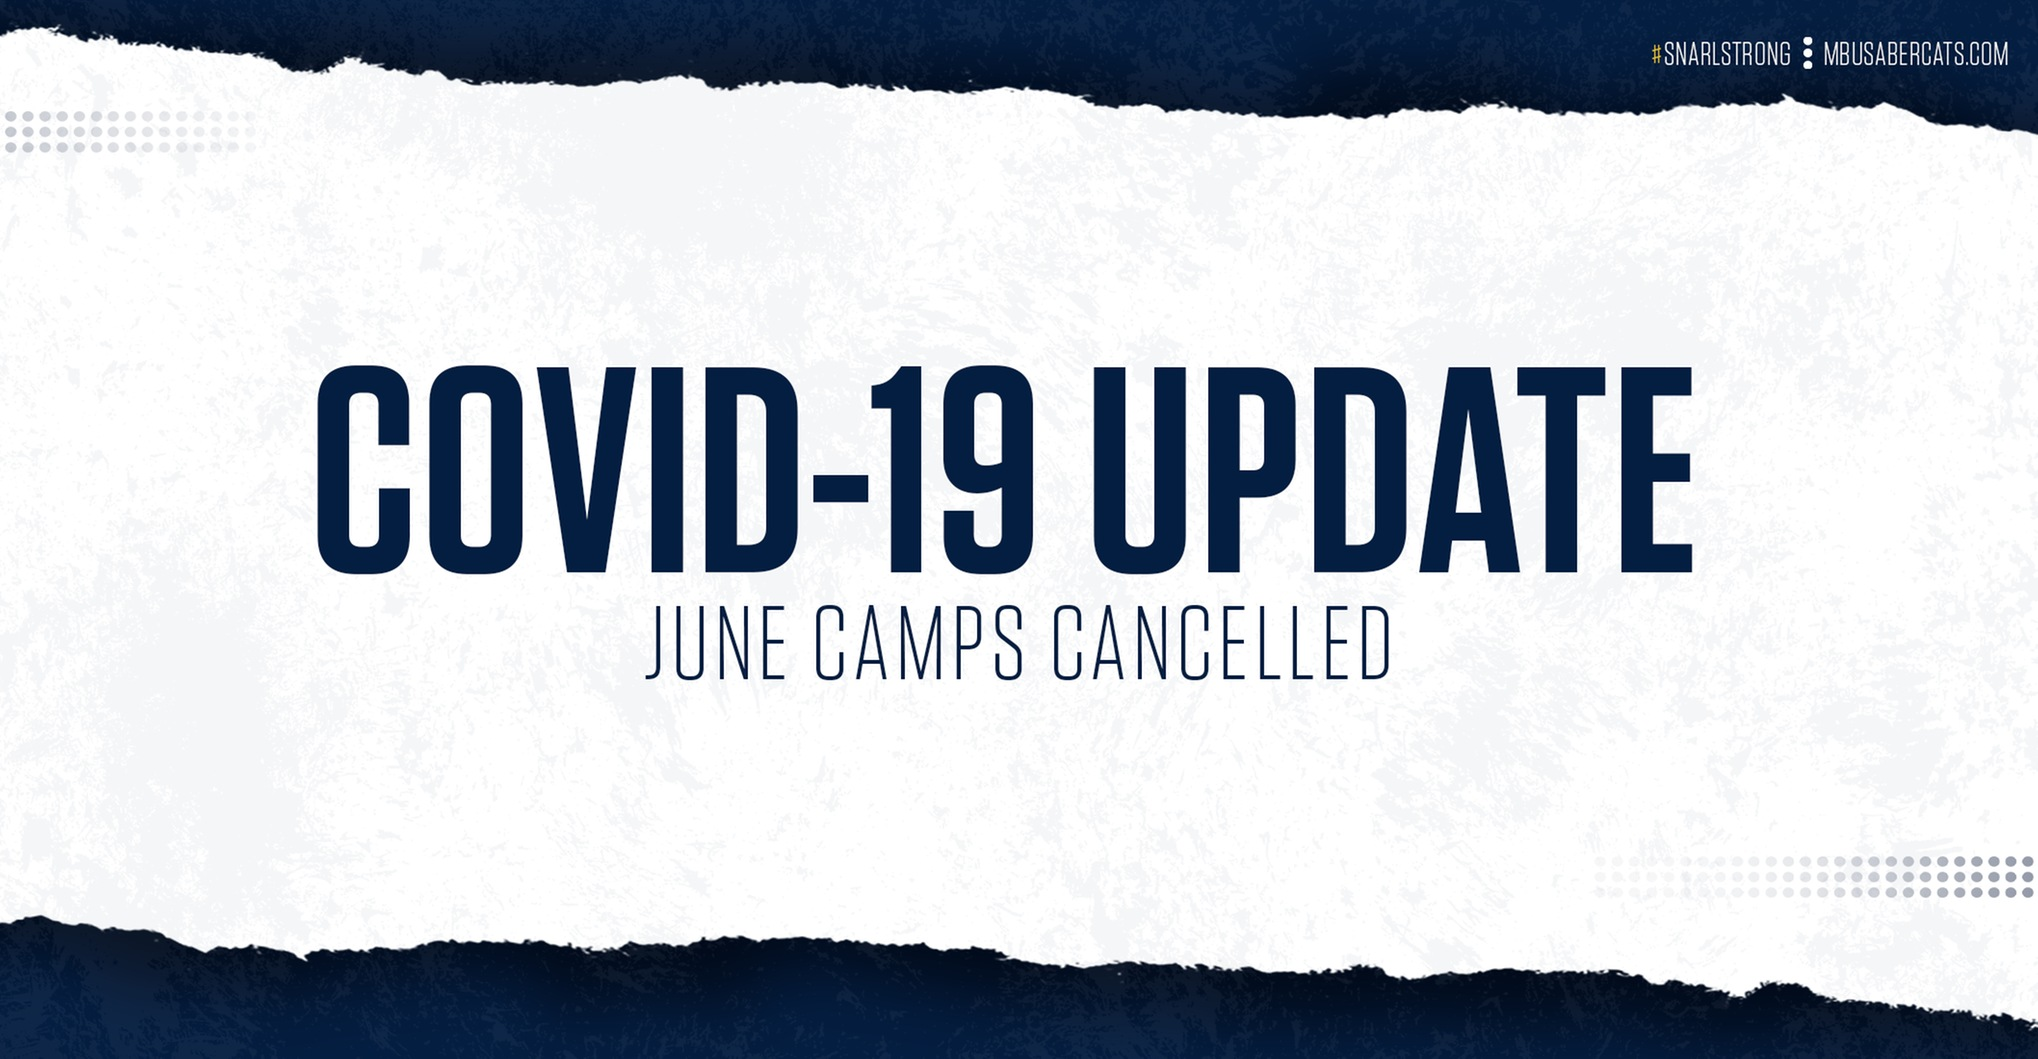 June Camps Cancelled